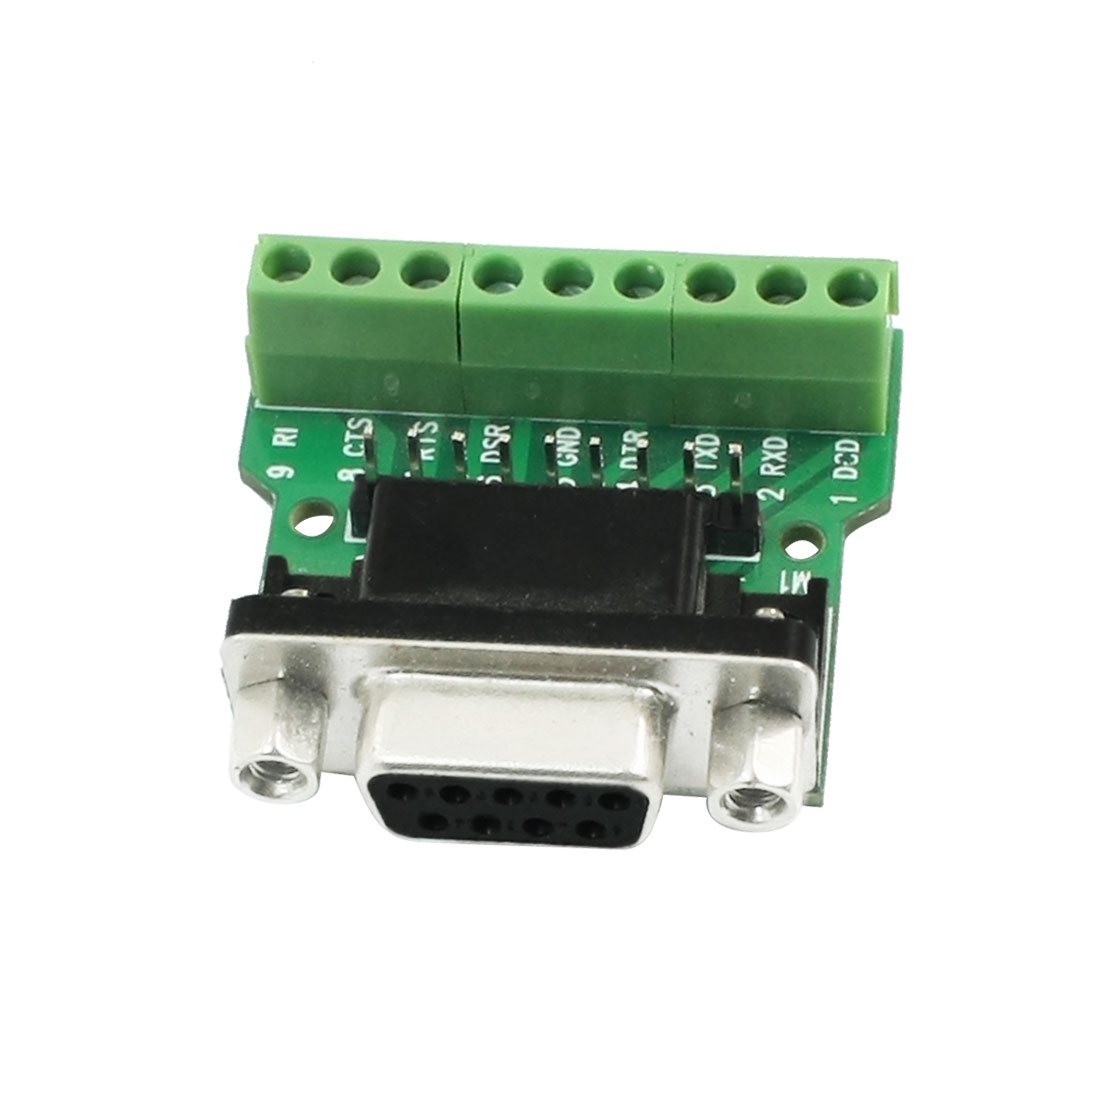 9Pin Terminal Block to RS232 Serial Port Communication Module